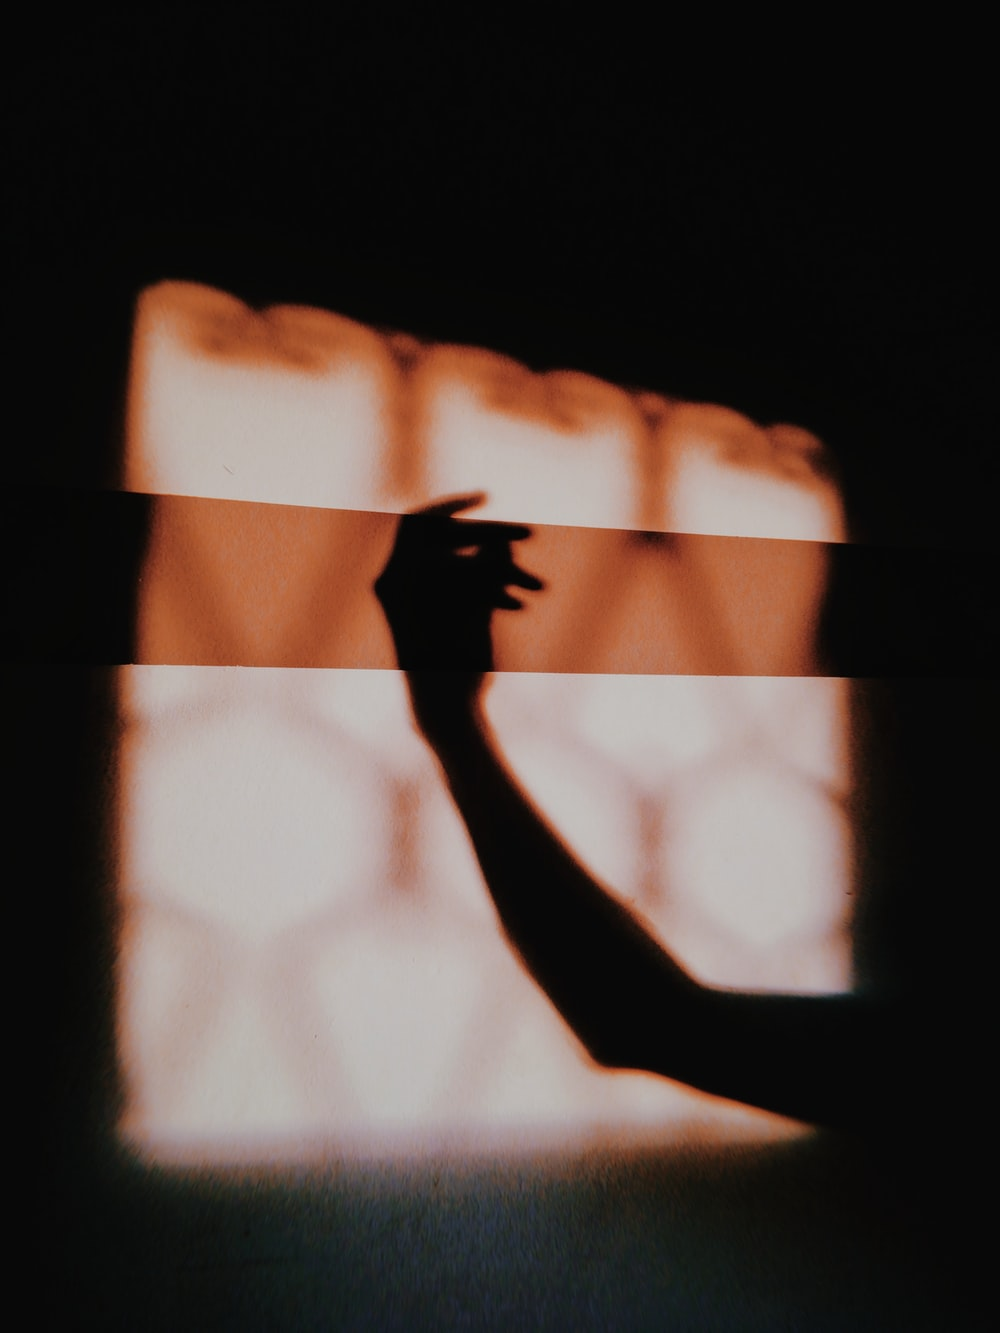 silhouette of person raising right hand